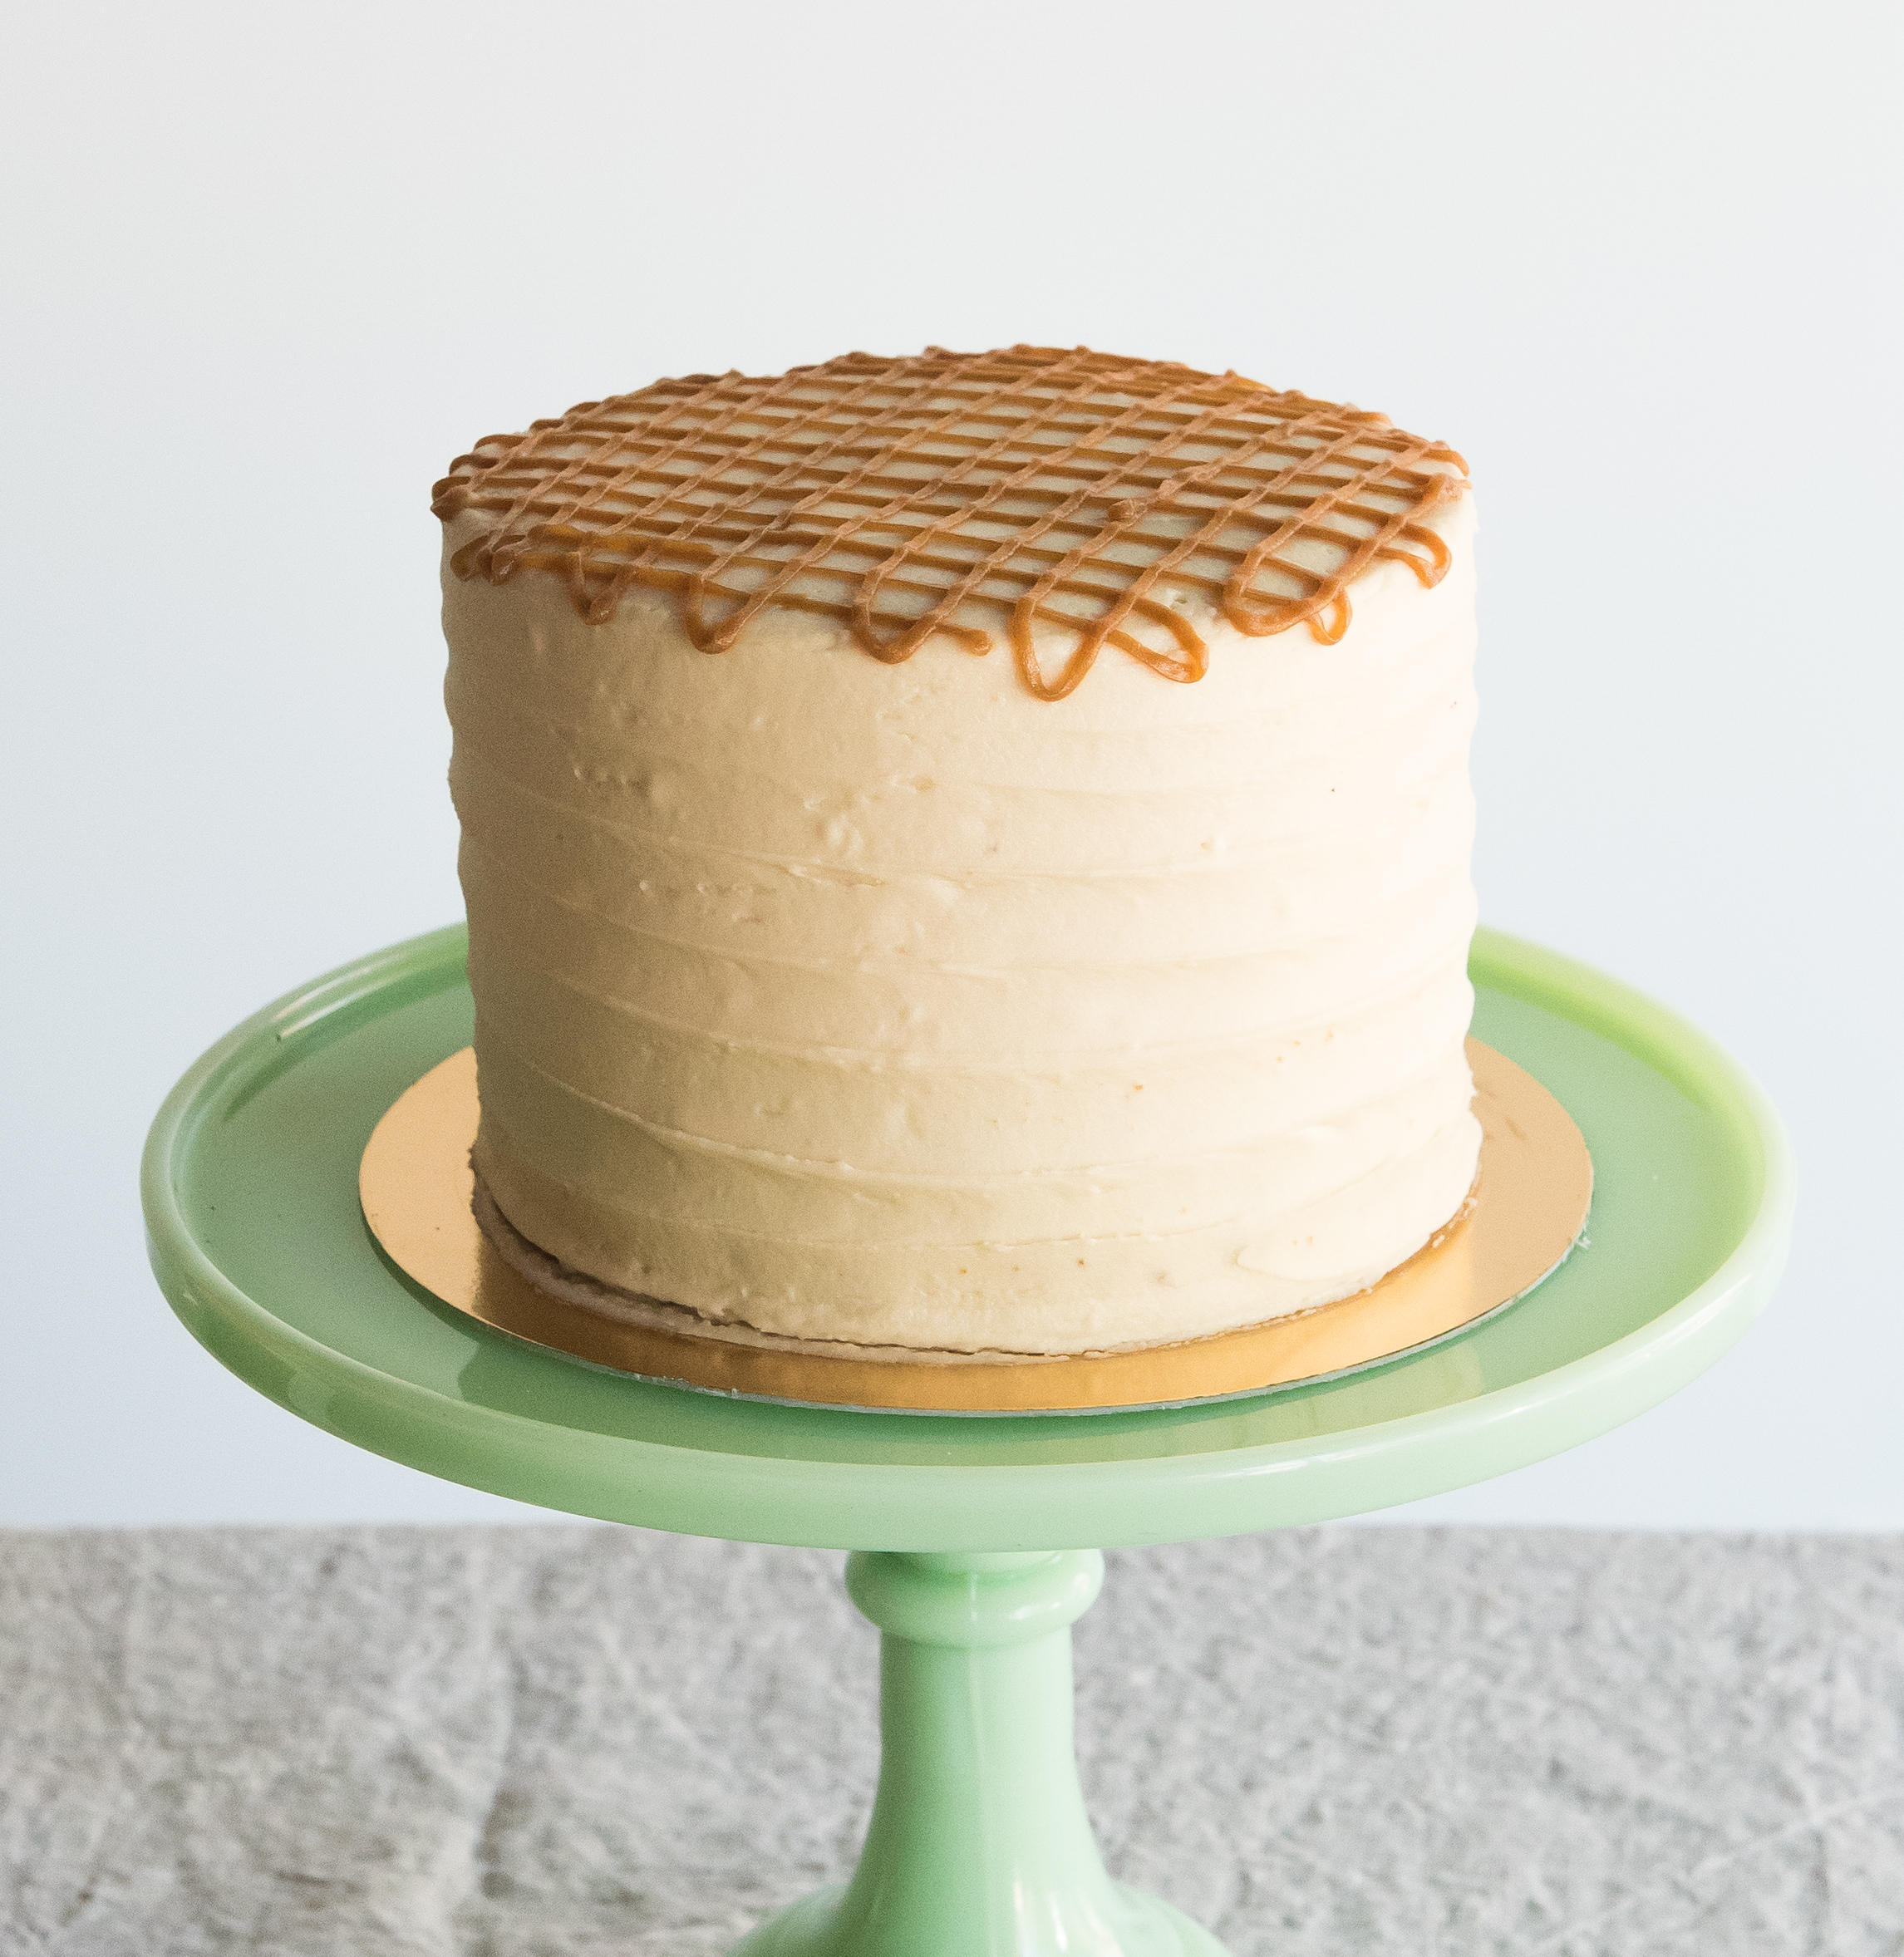 Salted Vanilla Cake with Salted Caramel Buttercream